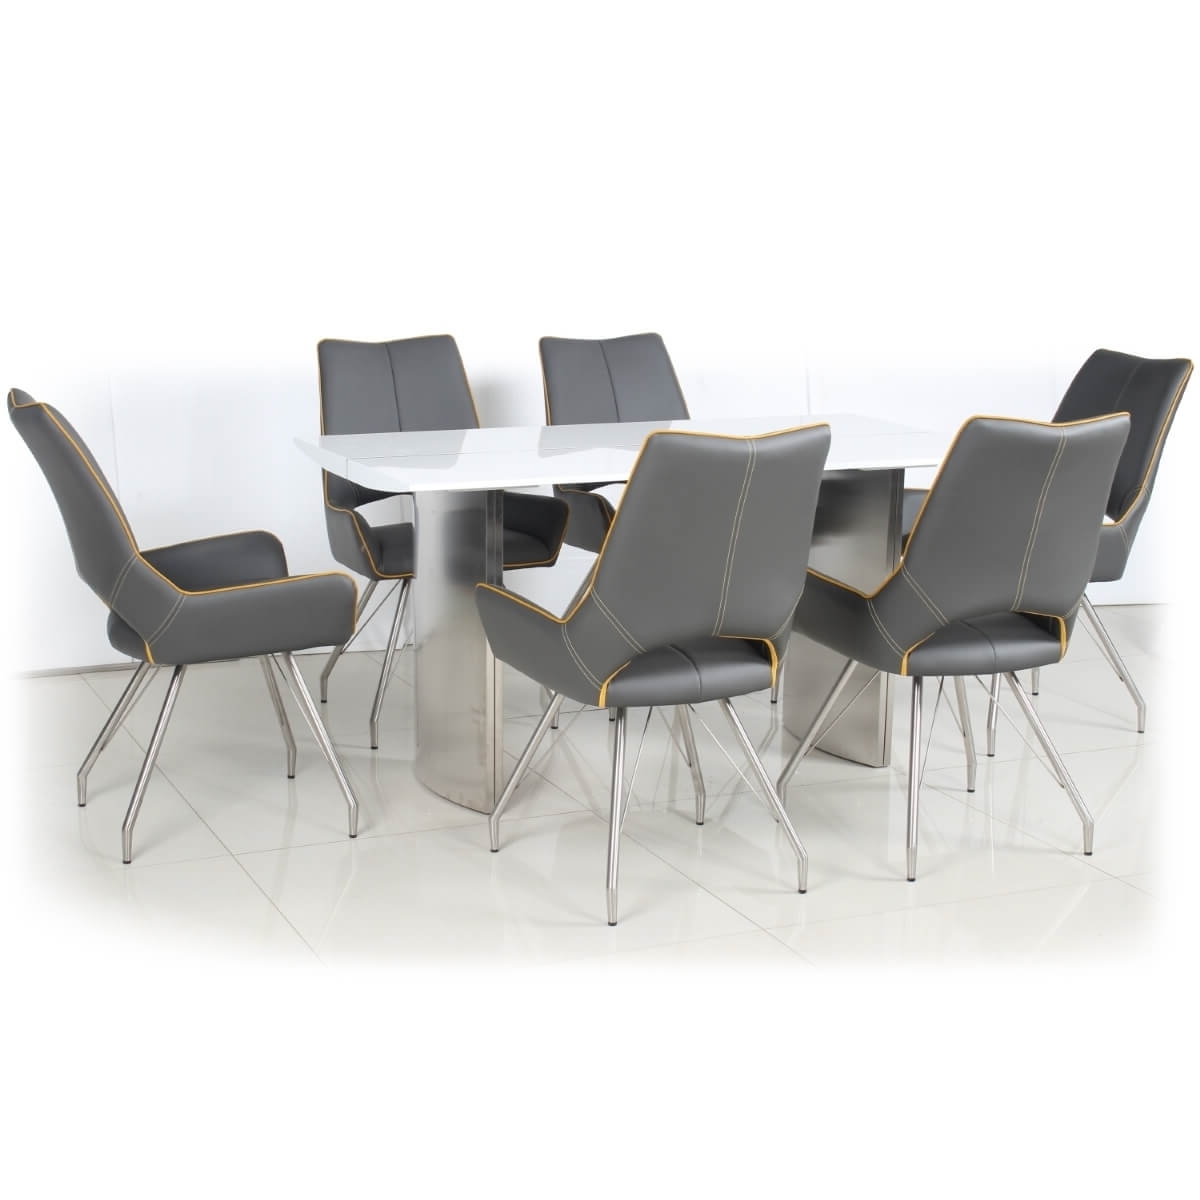 Most Recent Dining Set – White High Gloss Dining Table And 6 Grey Dining Chairs With Regard To Gloss Dining Sets (View 18 of 25)